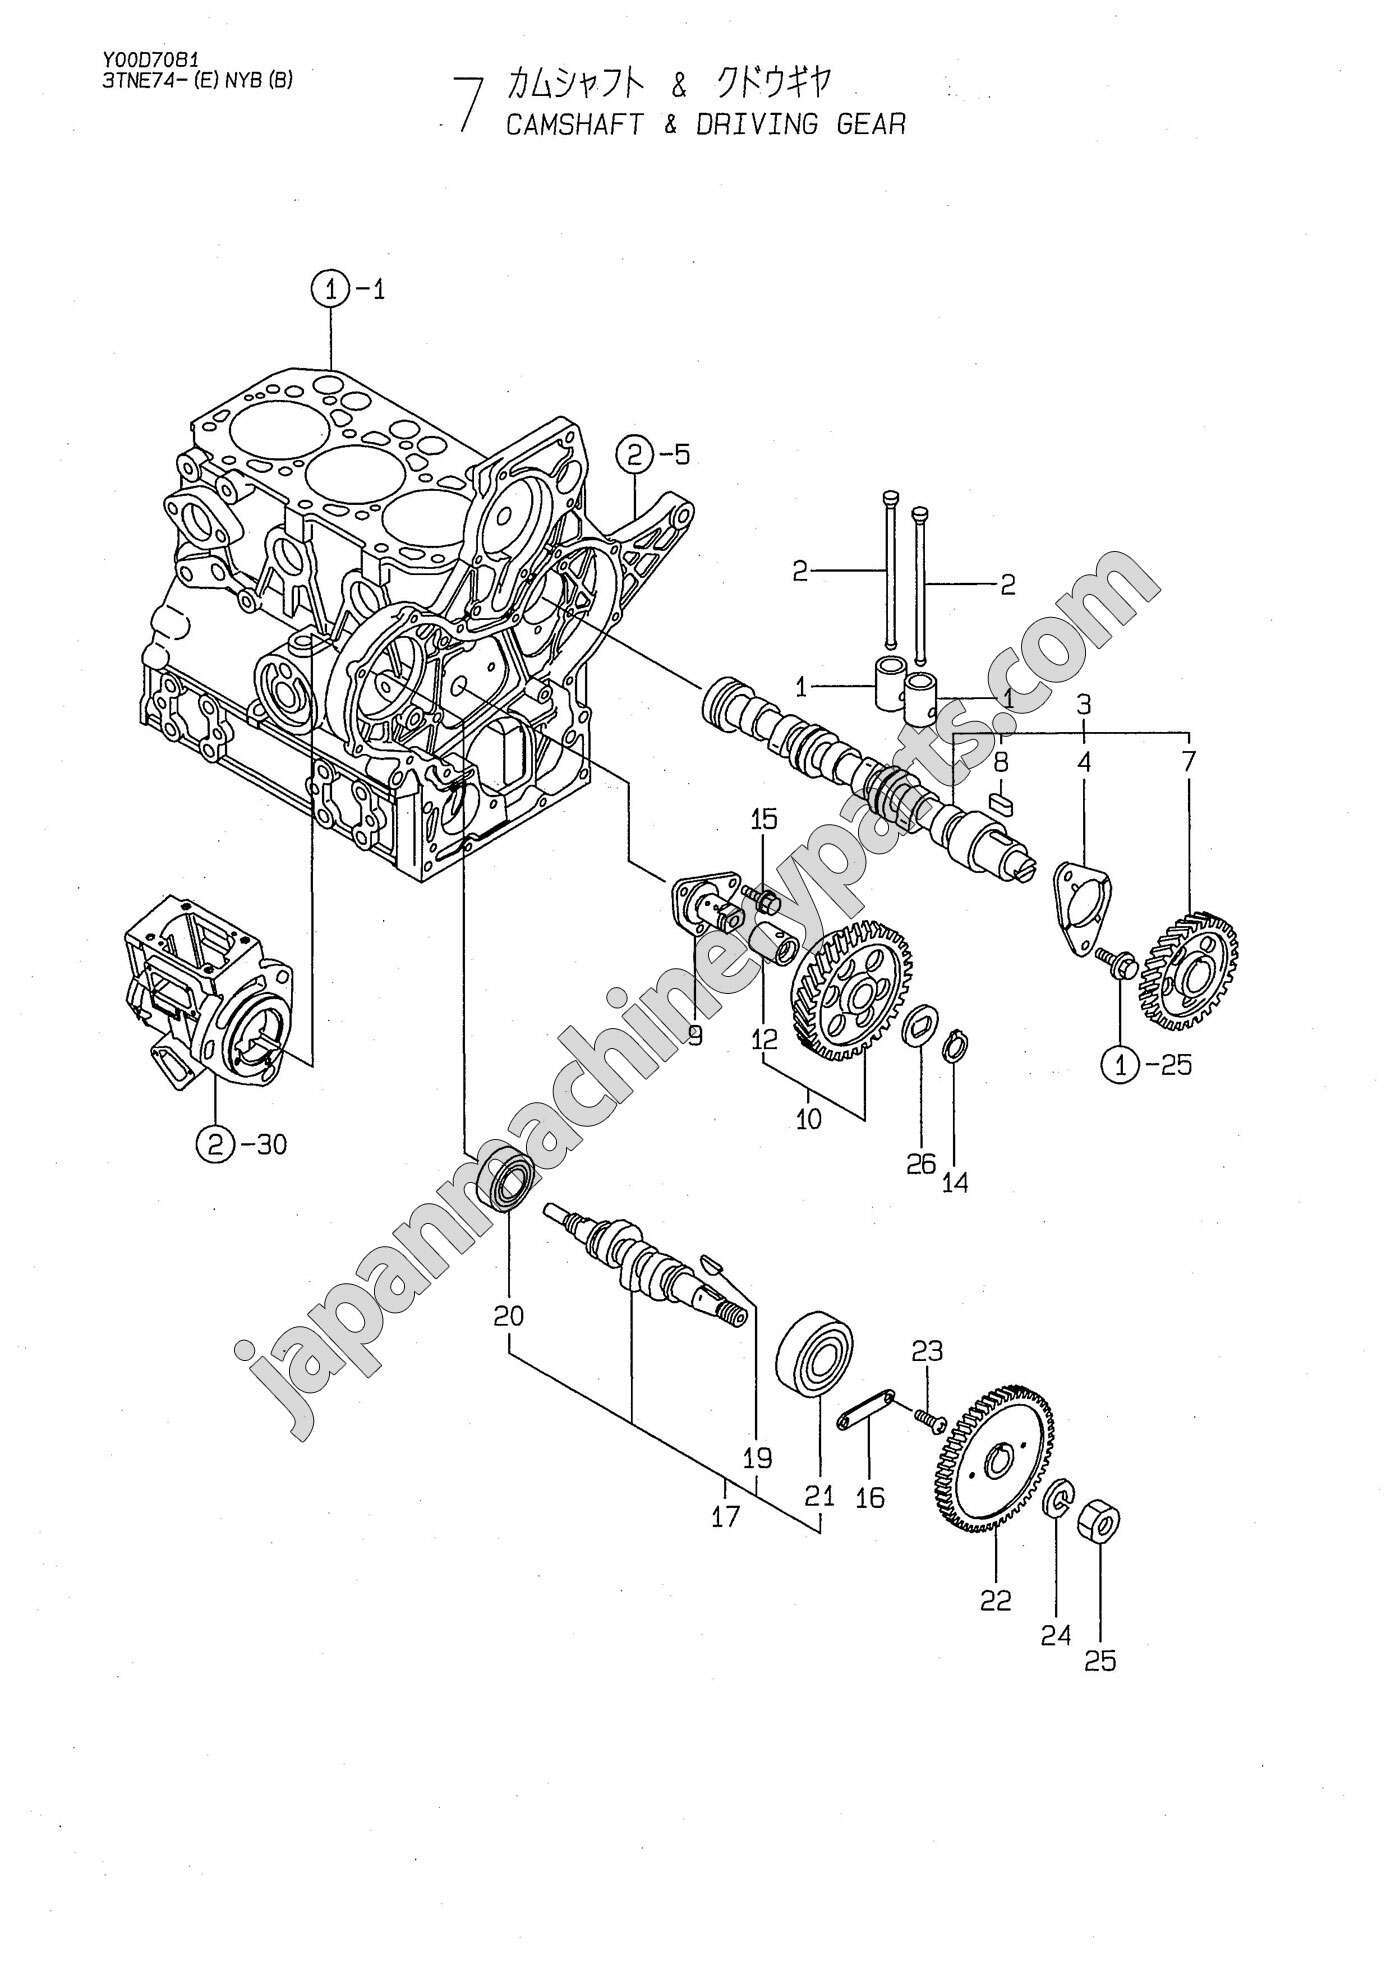 1964 ford 4000 tractor wiring diagram oven uk 1973 parts html